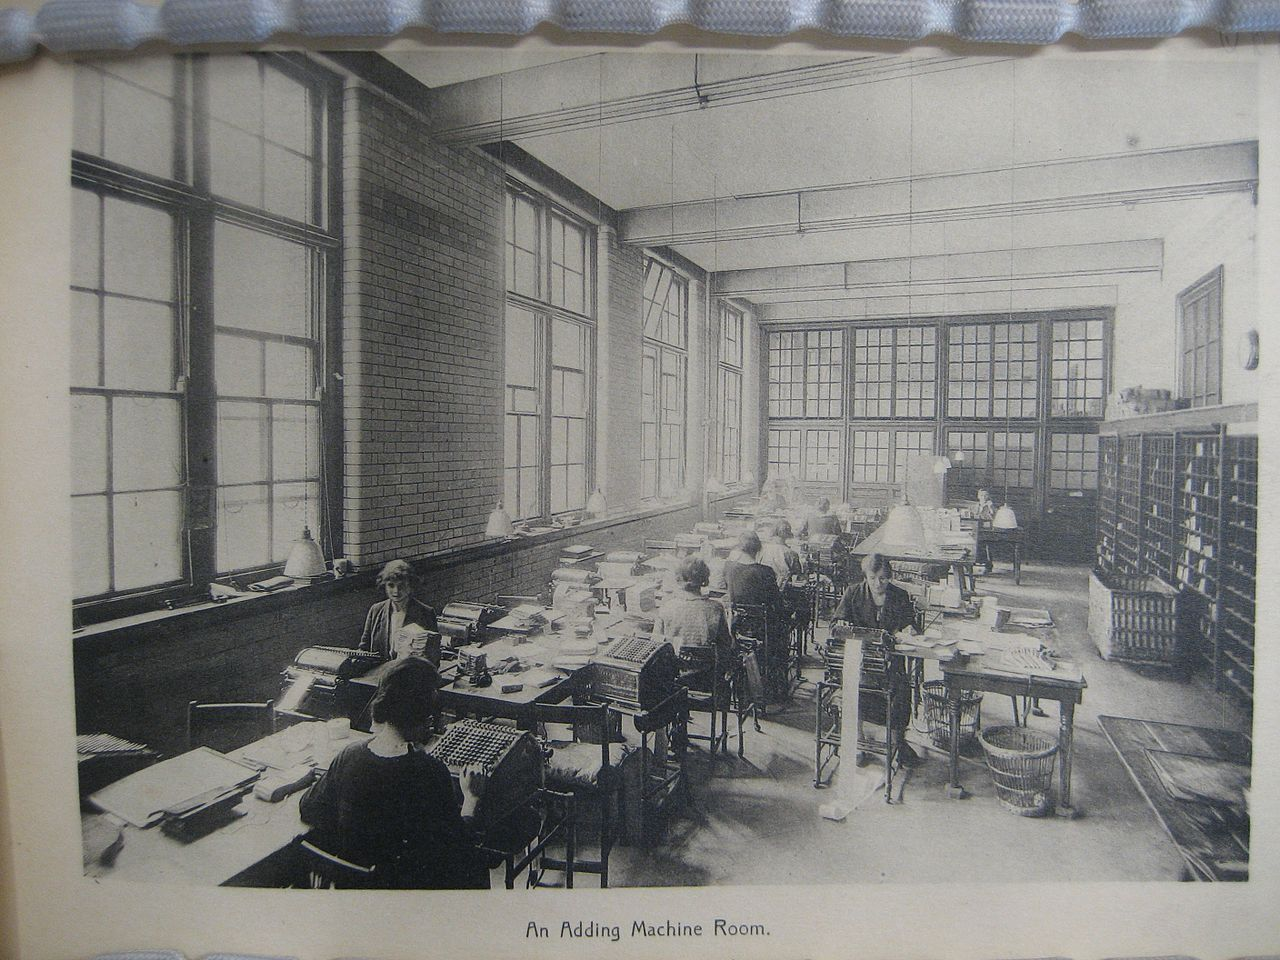 Clerks operating adding machines. Blythe house, c. 1924